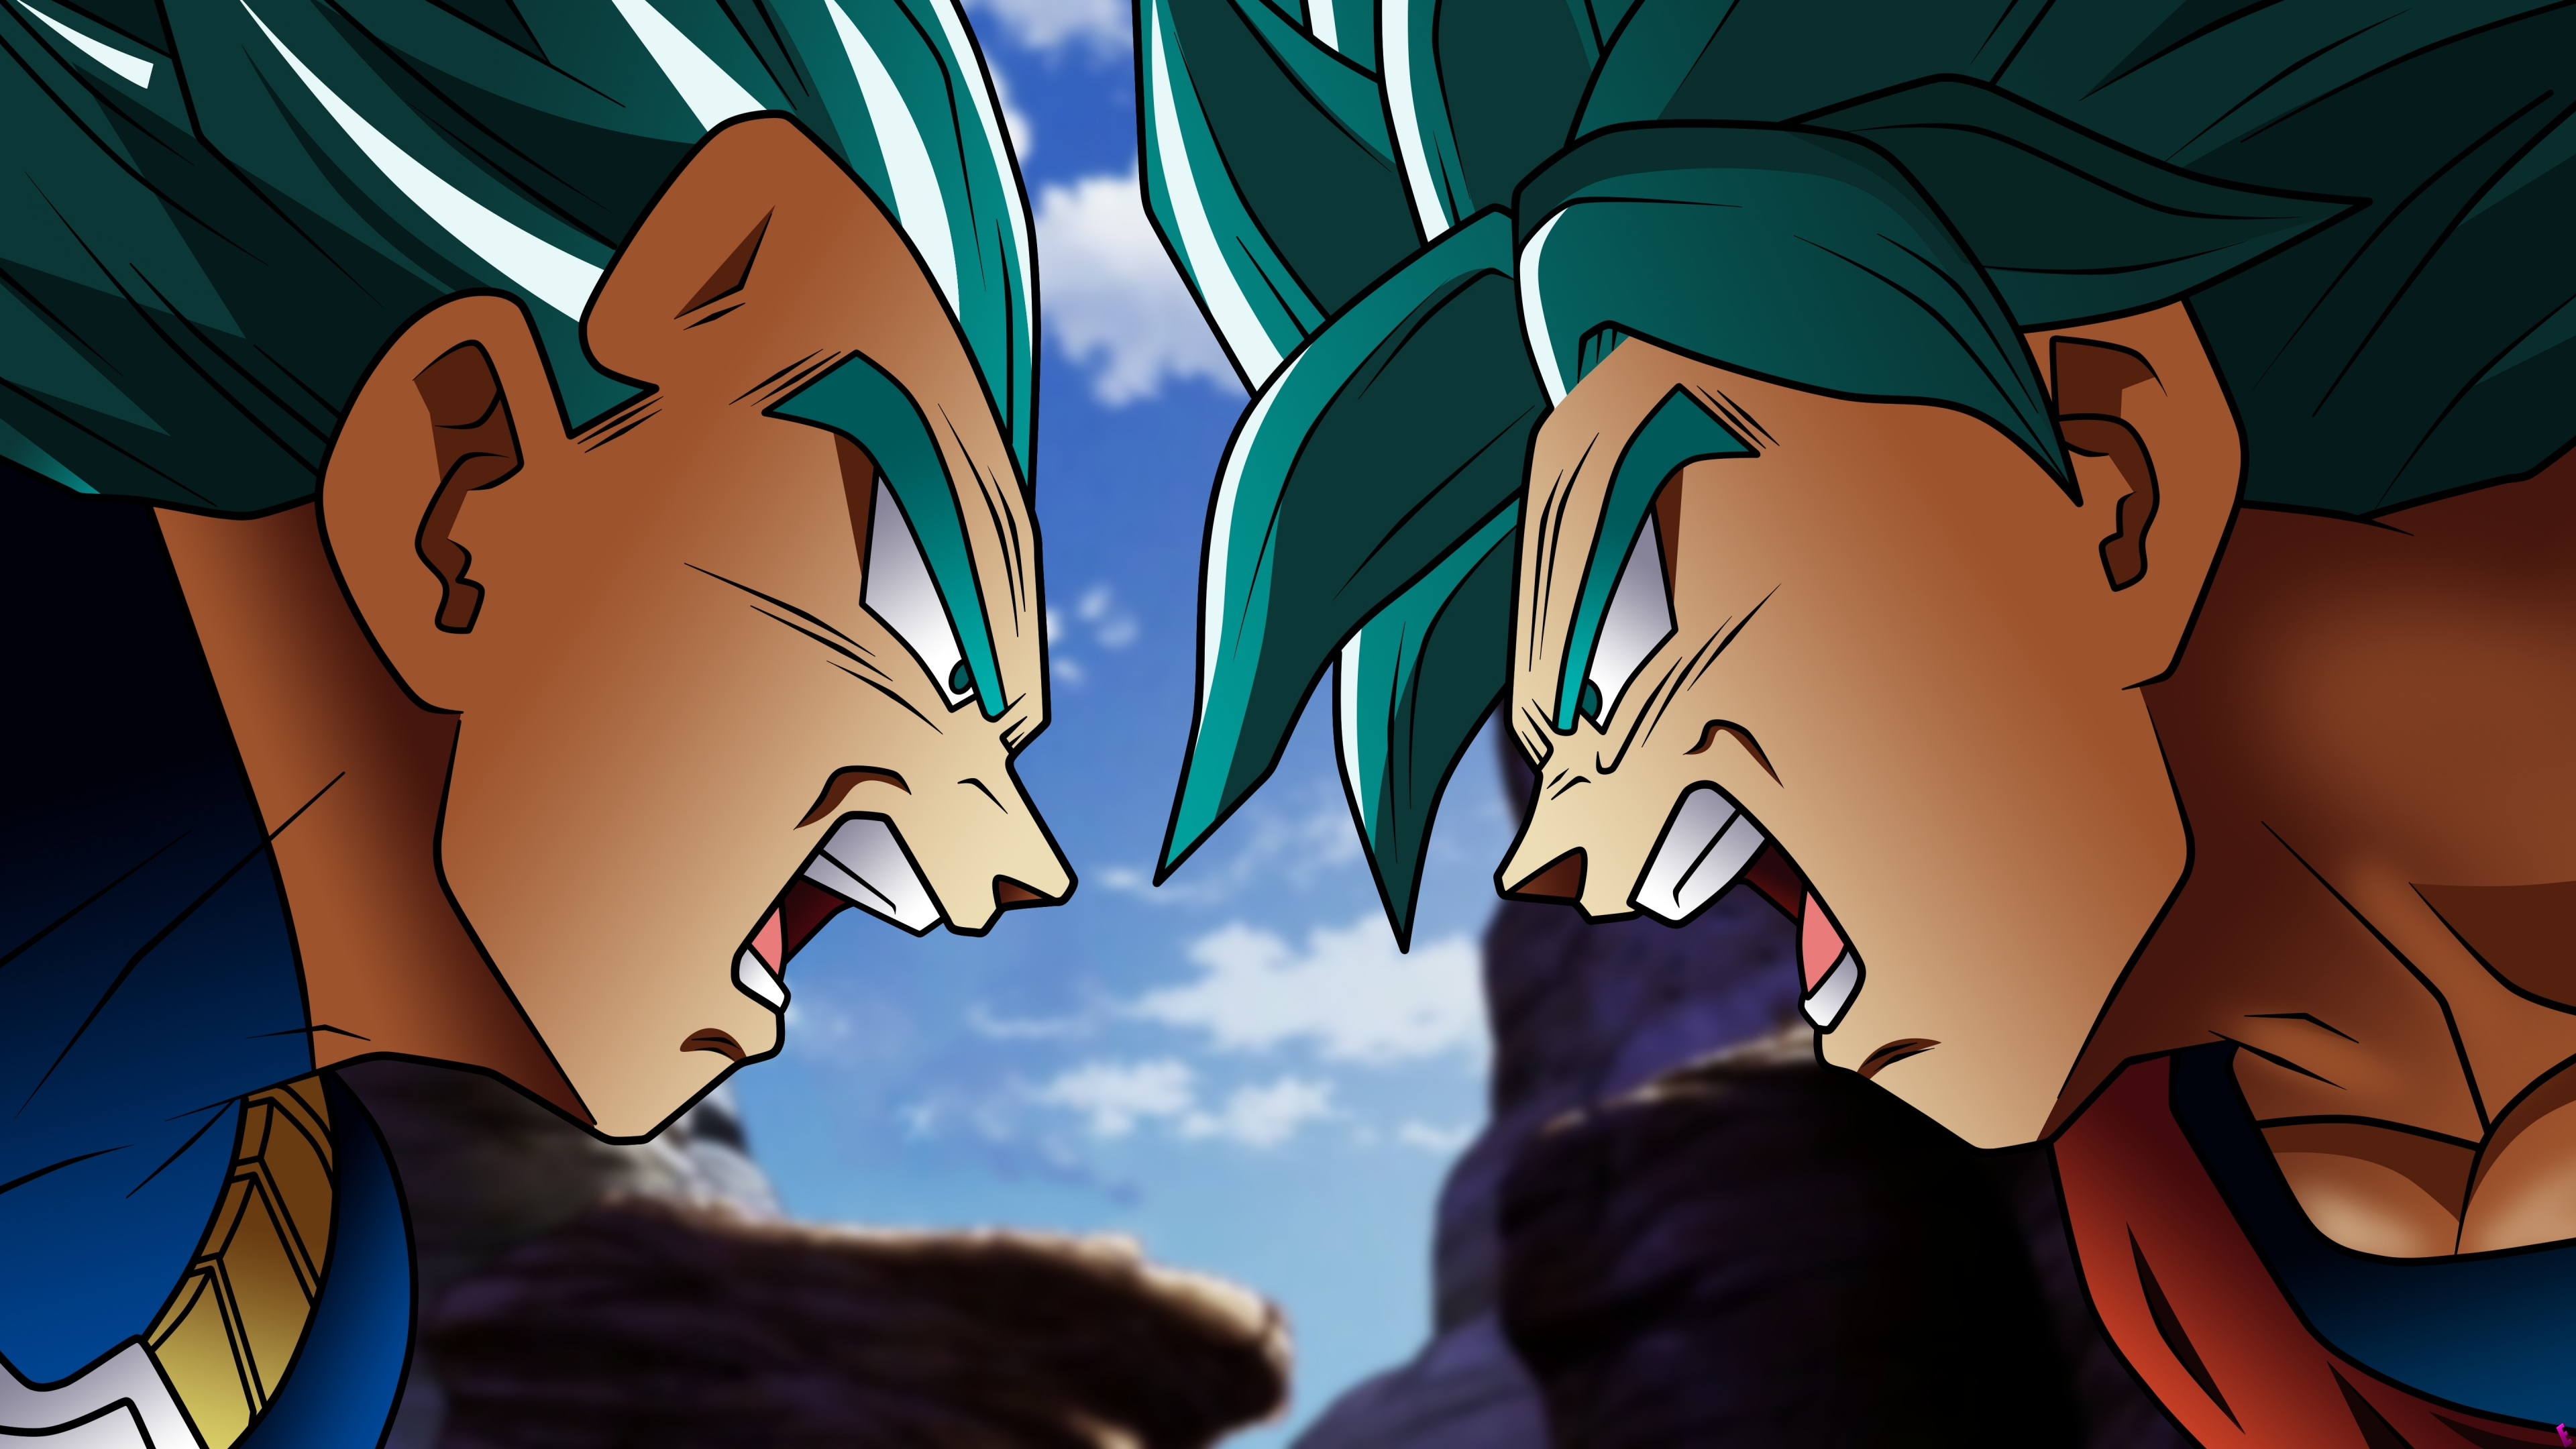 Vegeta Vs Goku From Dragon Ball Super Anime Wallpaper Id 4990